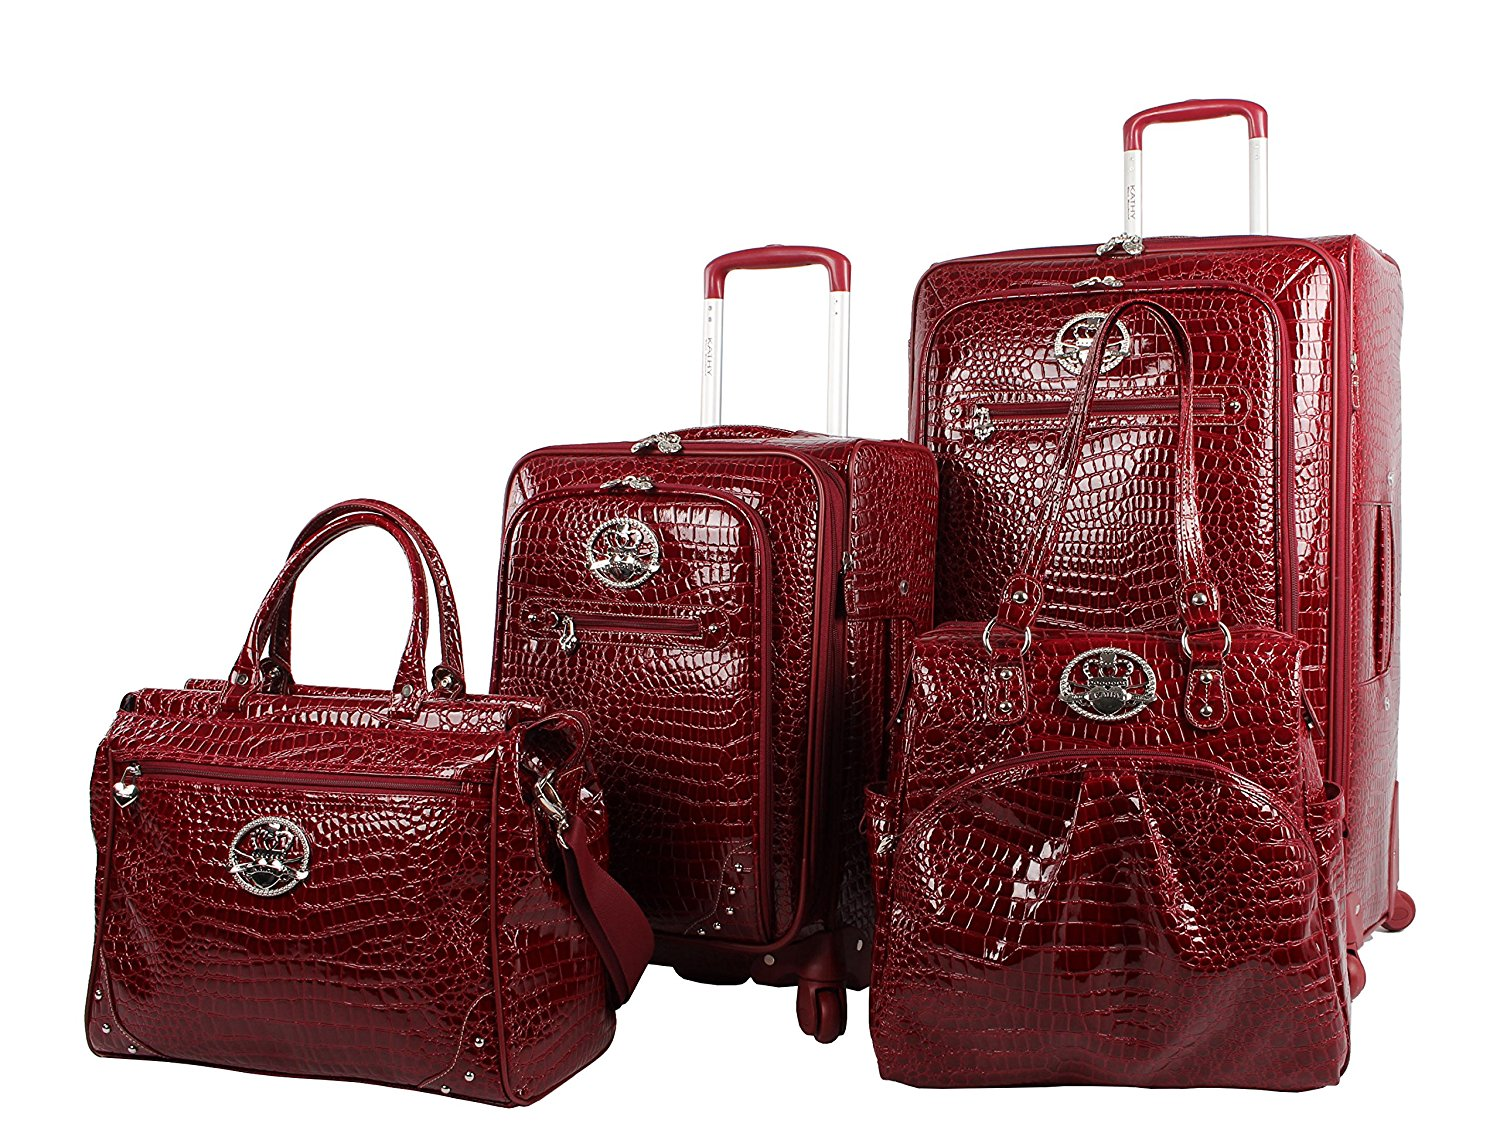 Kathy Van Zeeland Croco PVC Luggage Set 4 Piece Expandable Suitcase with  Spinner Wheels 5509b0609a6c3